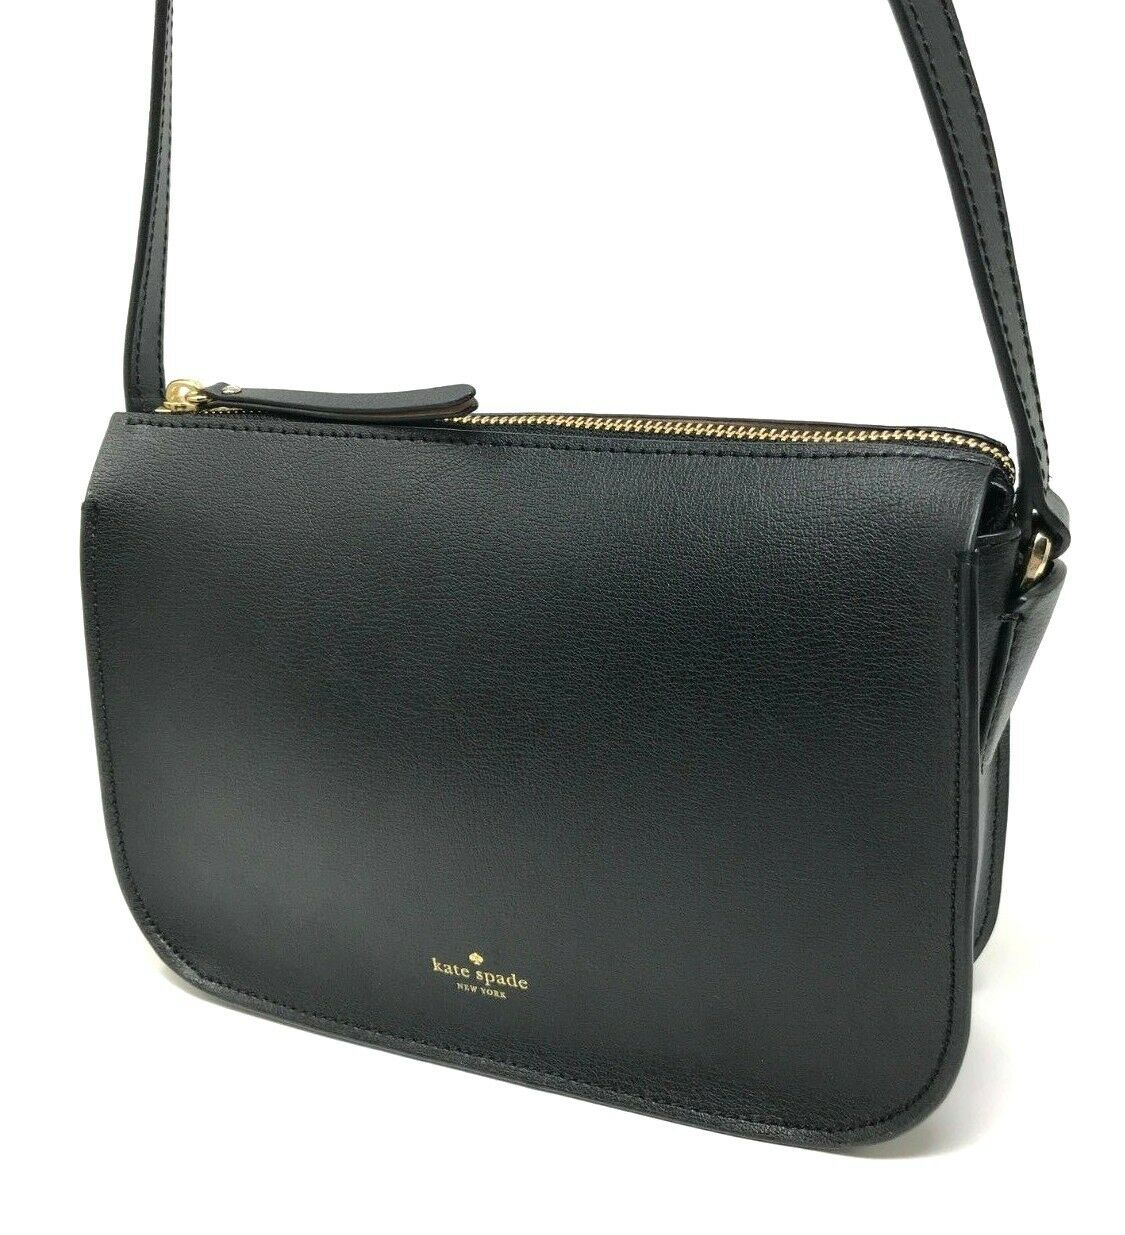 Kate Spade Holiday Lane Val Black Leather Zip Crossbody Bag PXRUA067 $198